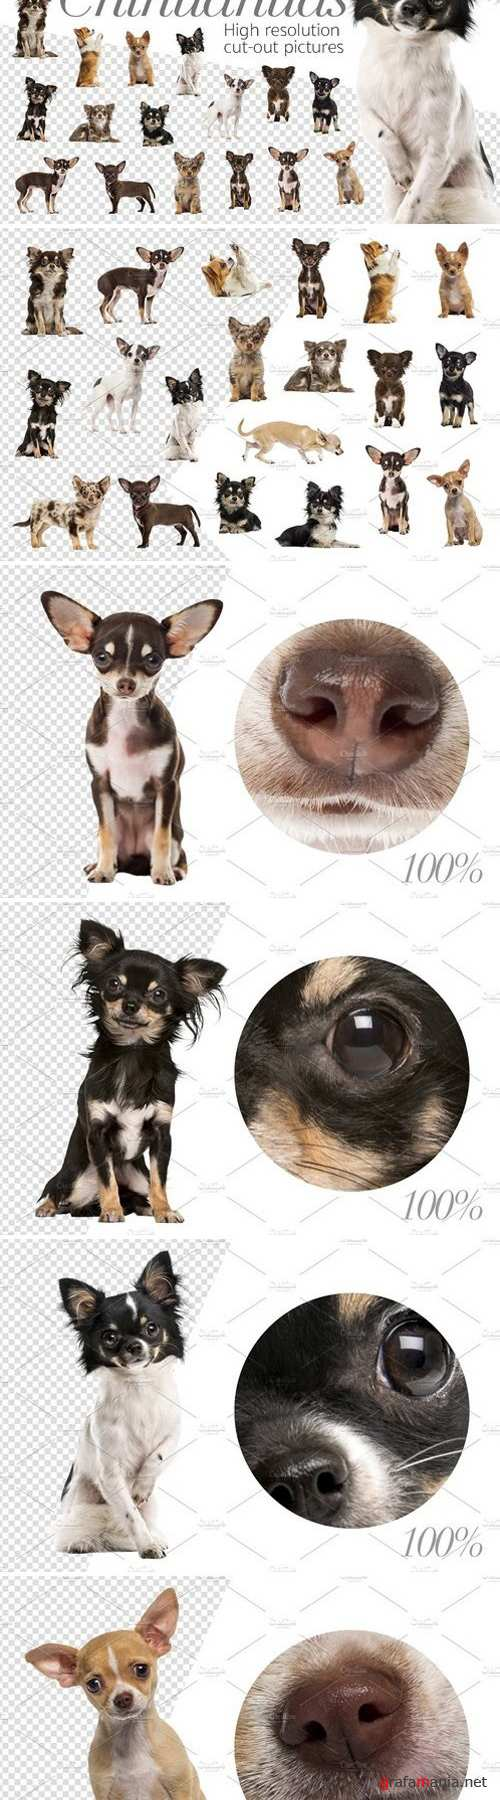 20 Chihuahuas - Cut-out Pictures 2042332